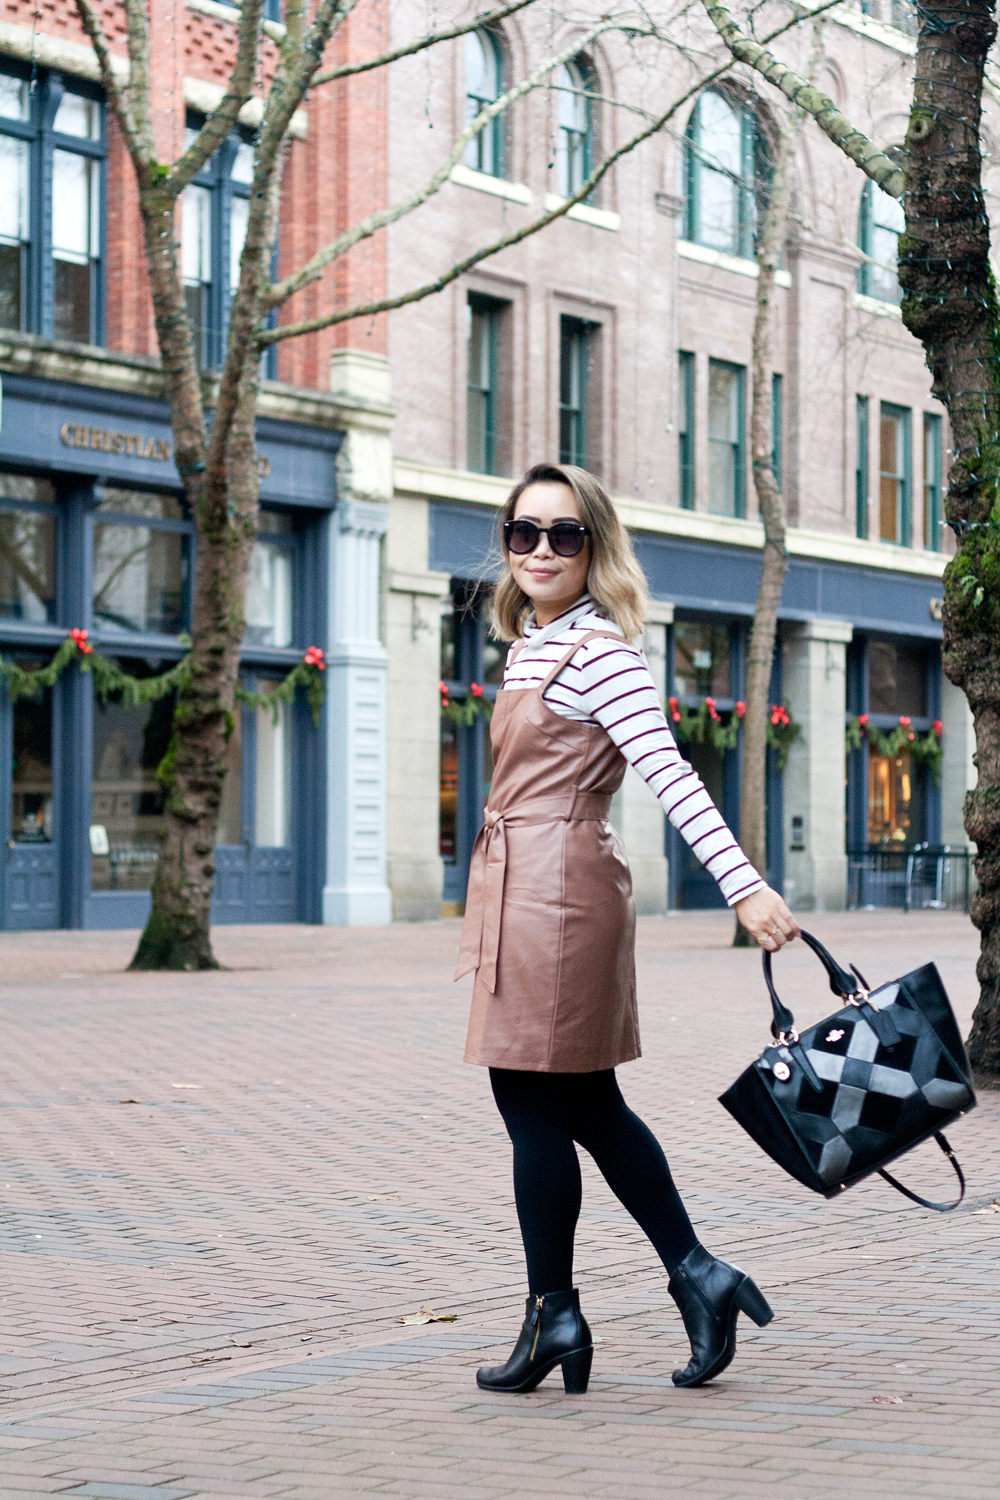 04seattle-pioneersquare-madewell-stripes-leather-pinafore-coach-travel-style-fashion